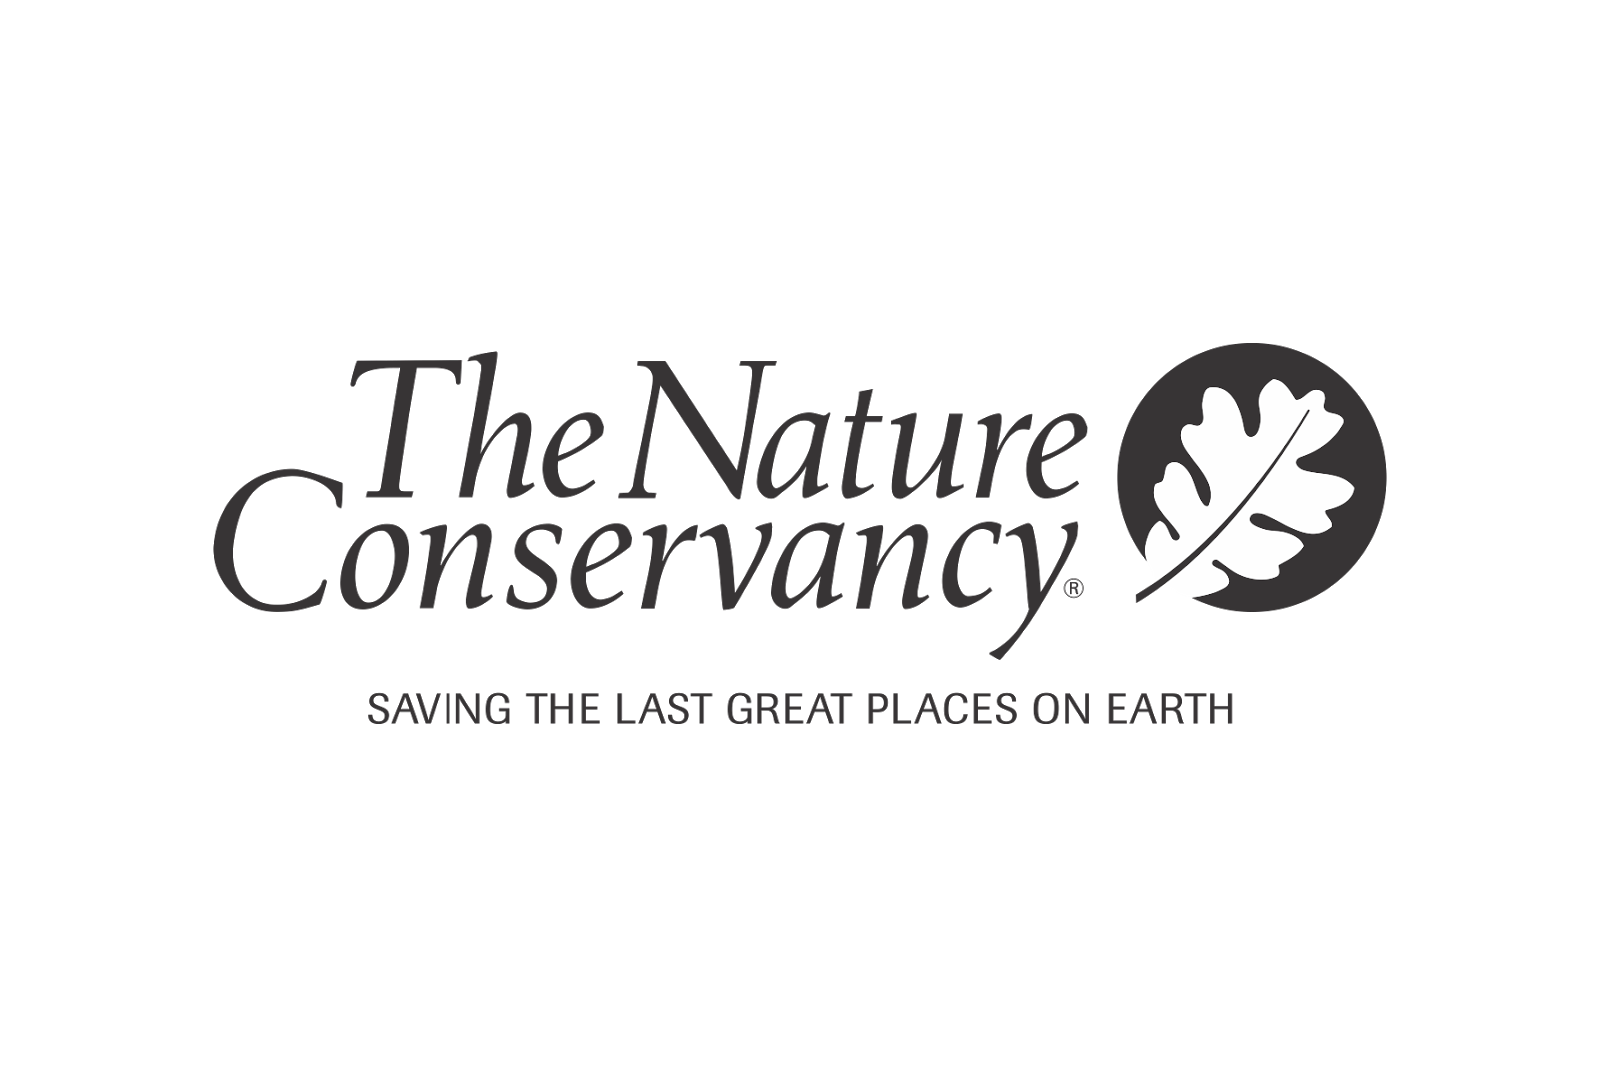 The nature conservancy logo png. Logos